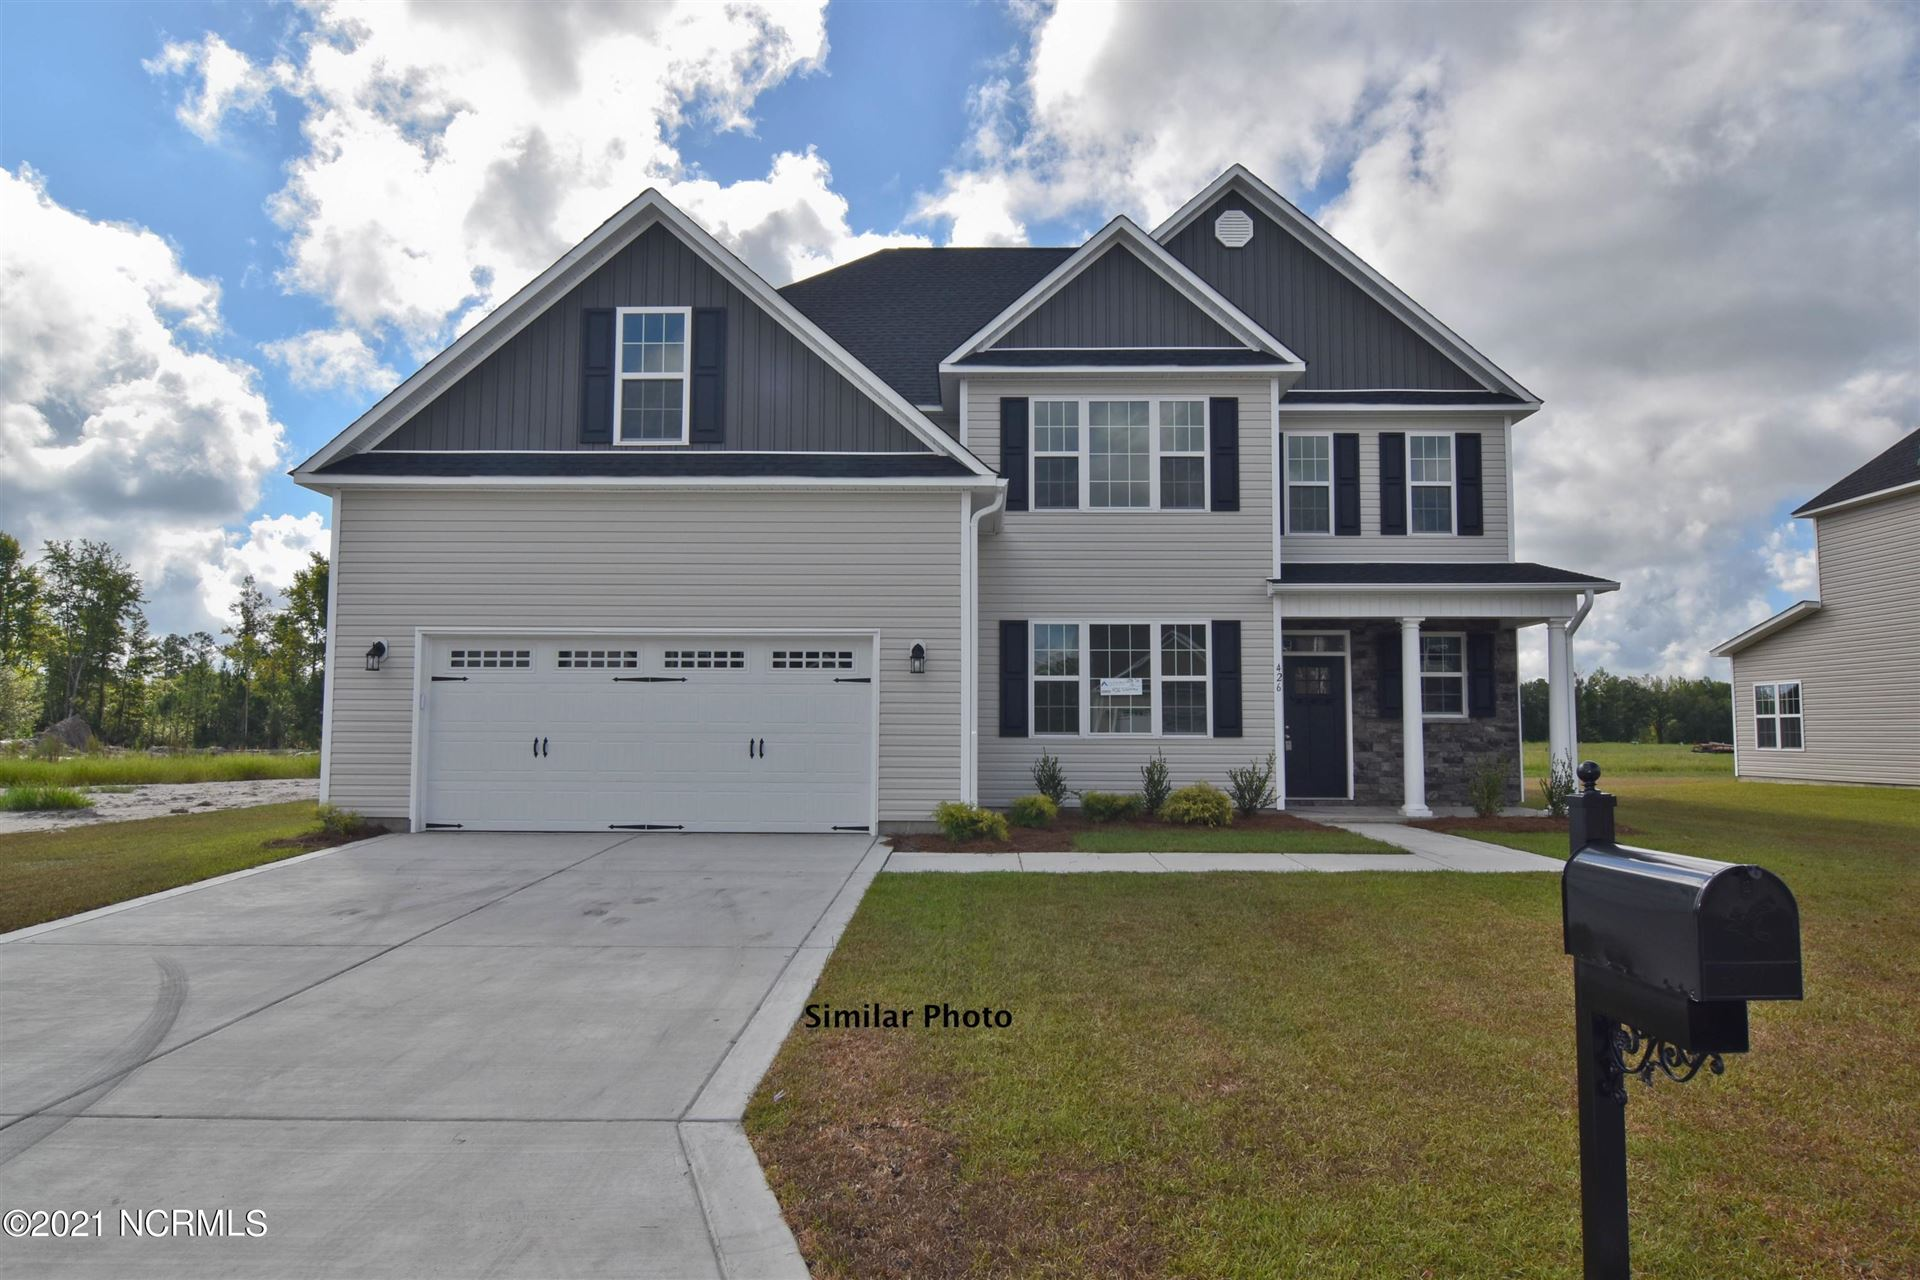 Photo for 304 Naval Store Drive, Jacksonville, NC 28546 (MLS # 100272121)